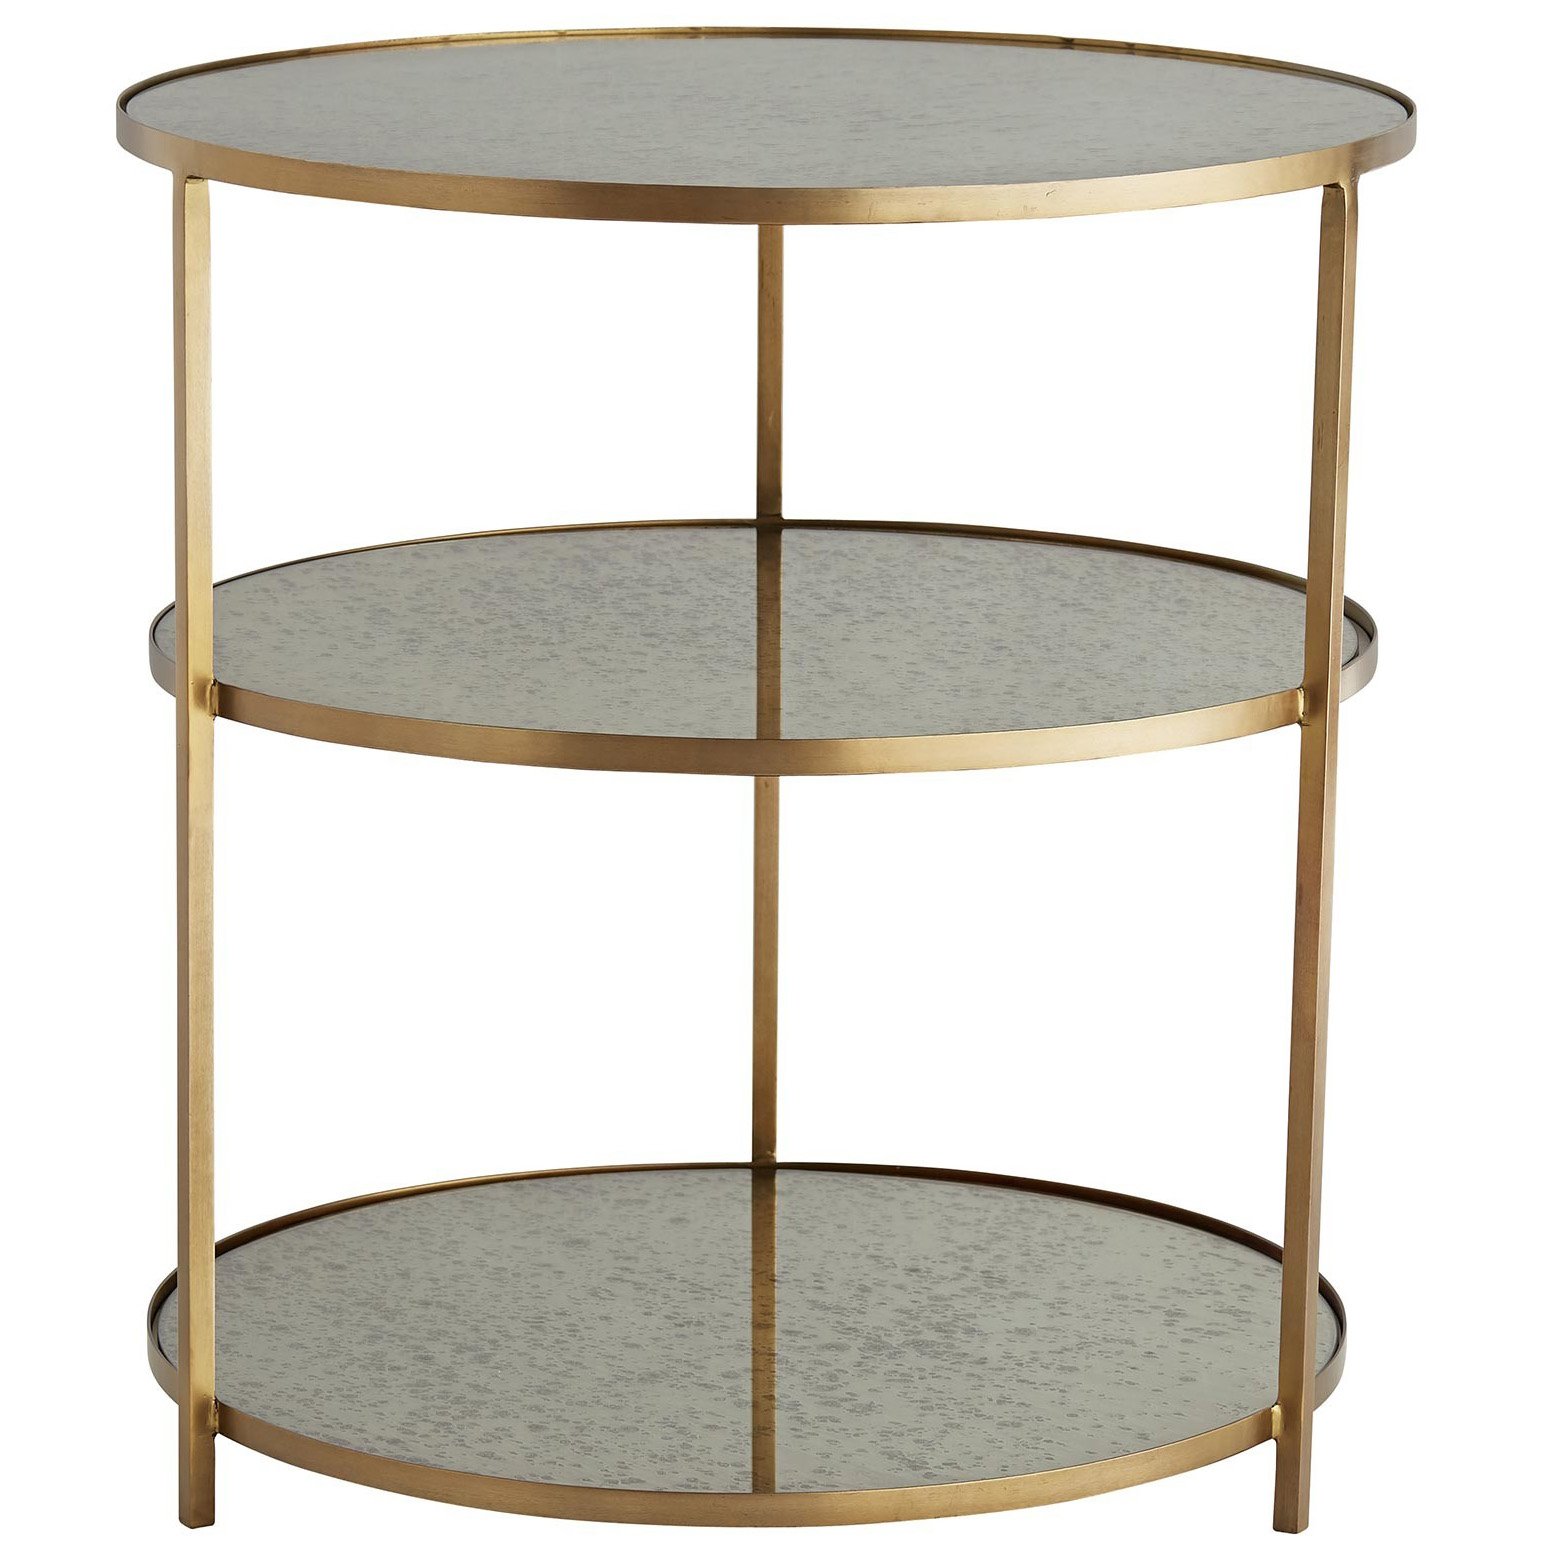 antiqued mirror side tables dandelion spell tiered metal accent table round tier iron with antique brass finished frame and nook plus pub height kitchen chest bottle wine rack